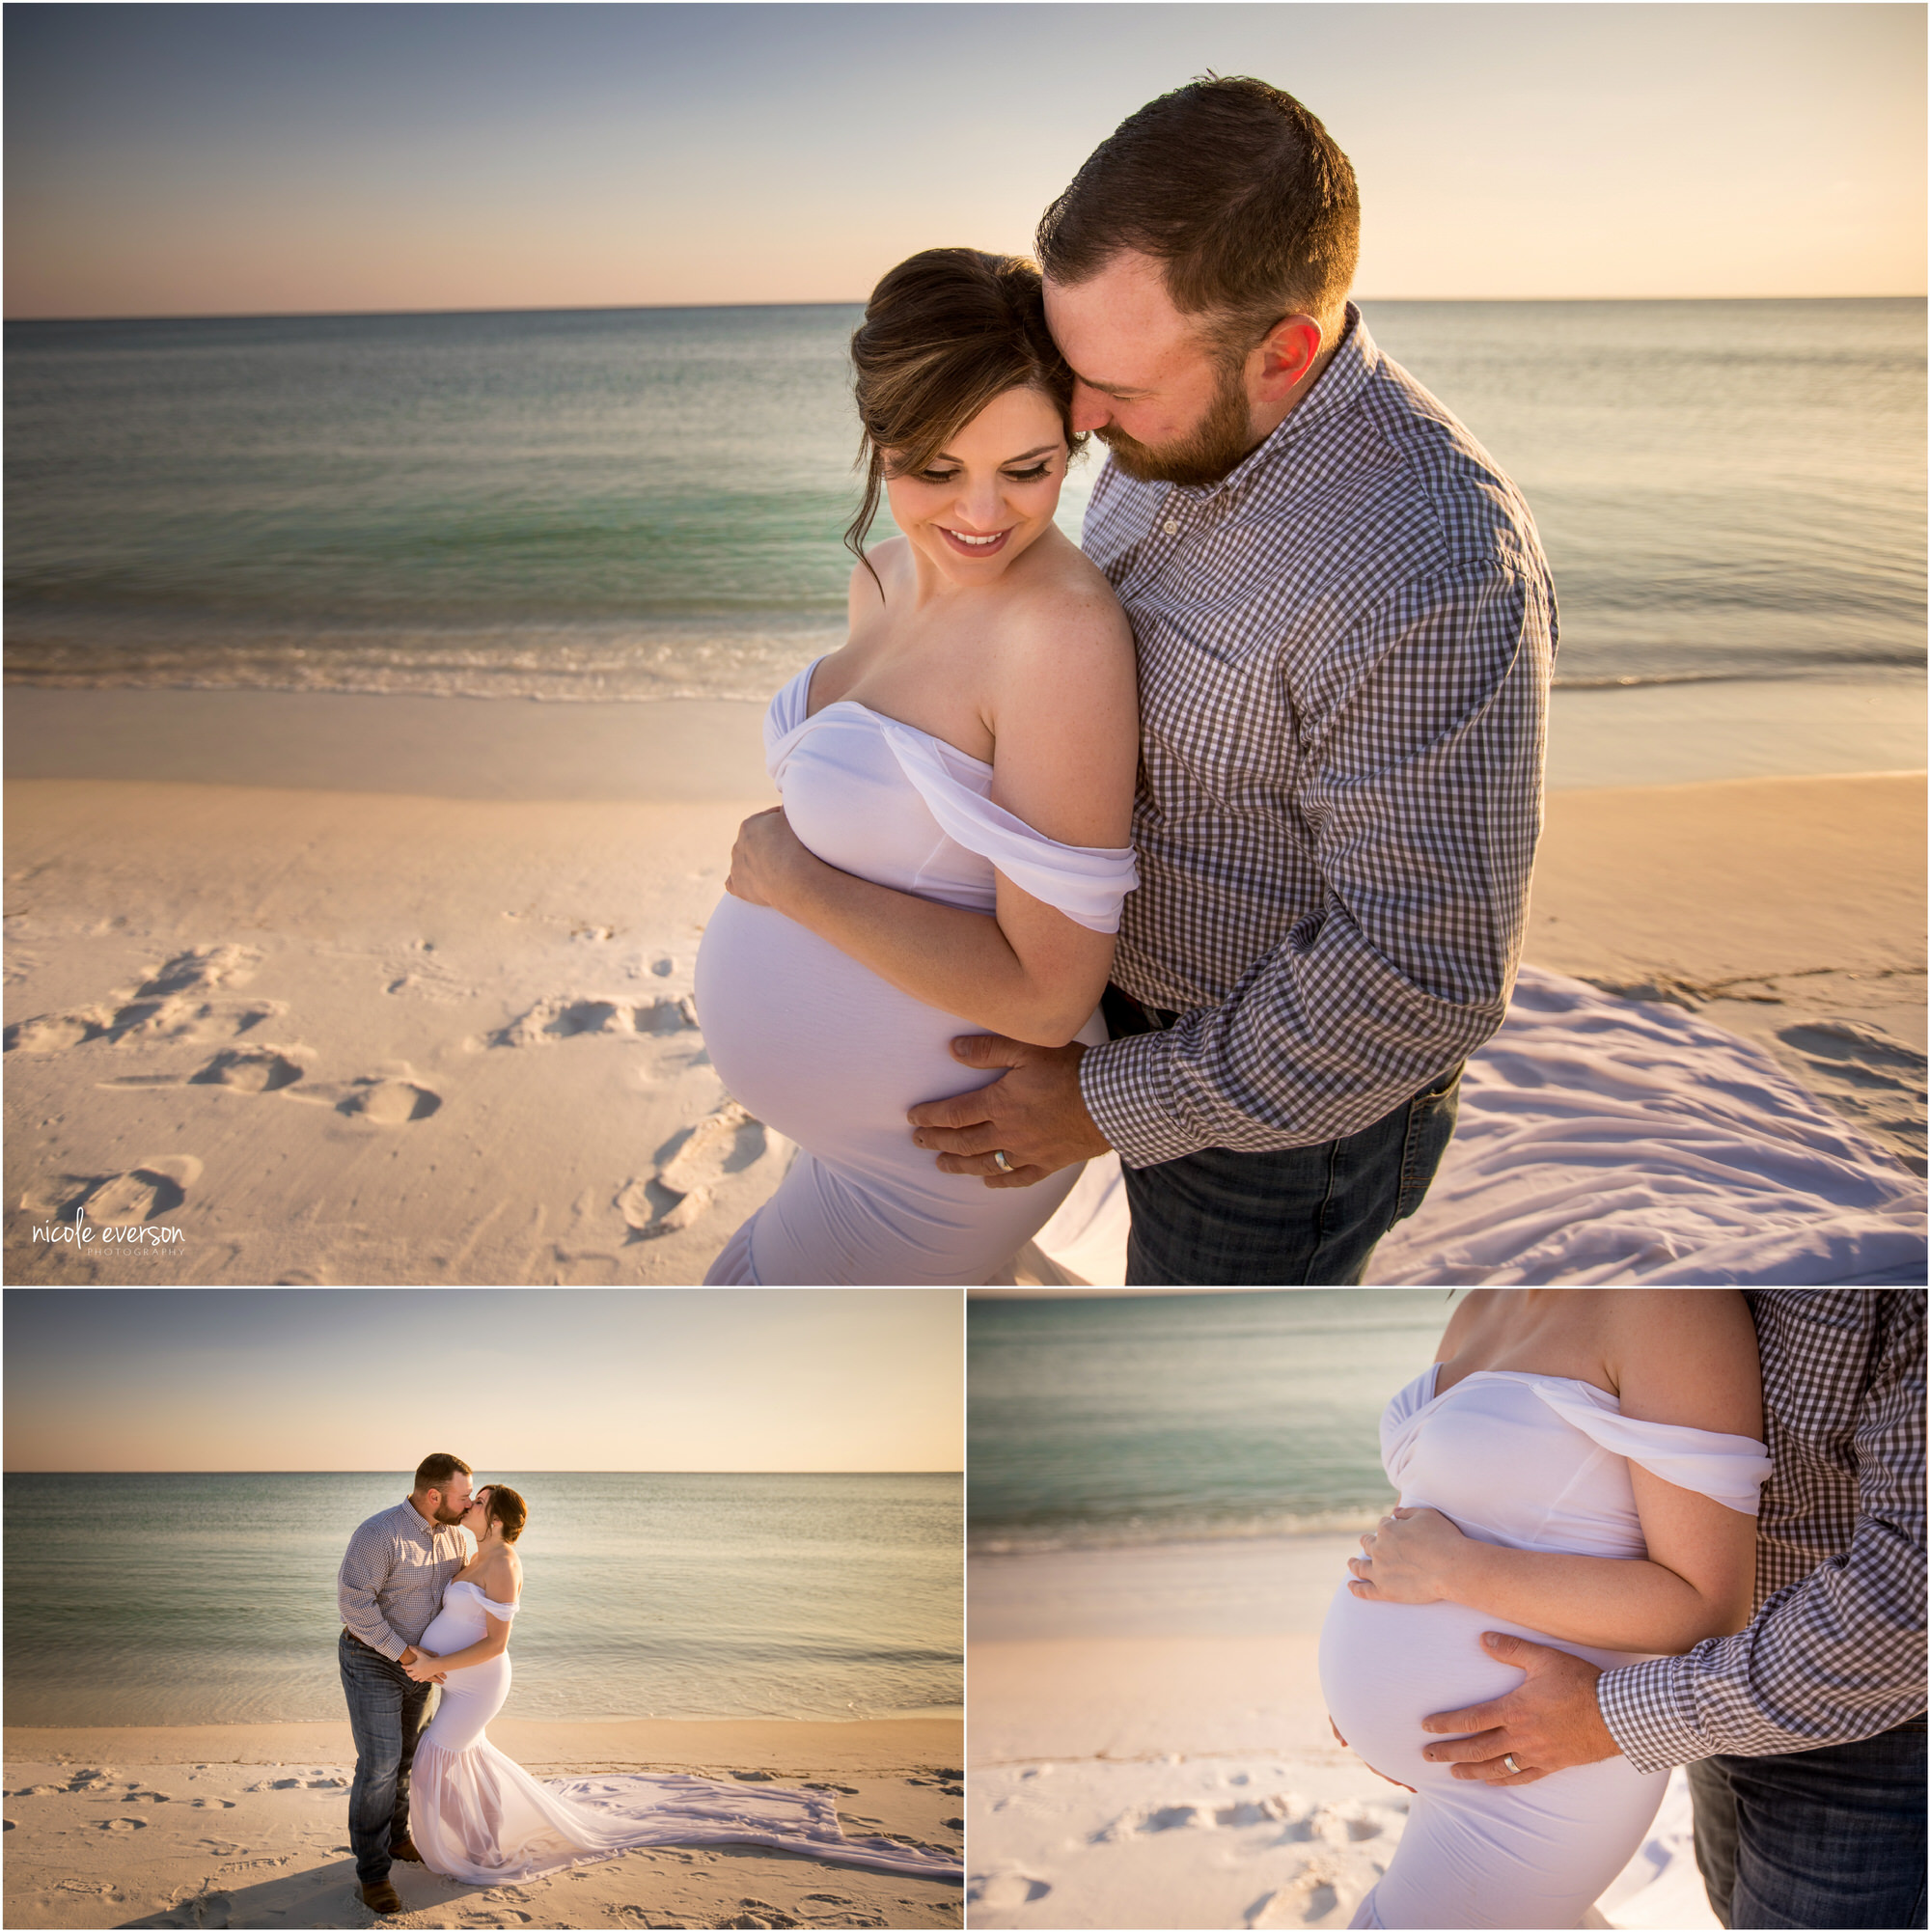 destin beach maternity photos